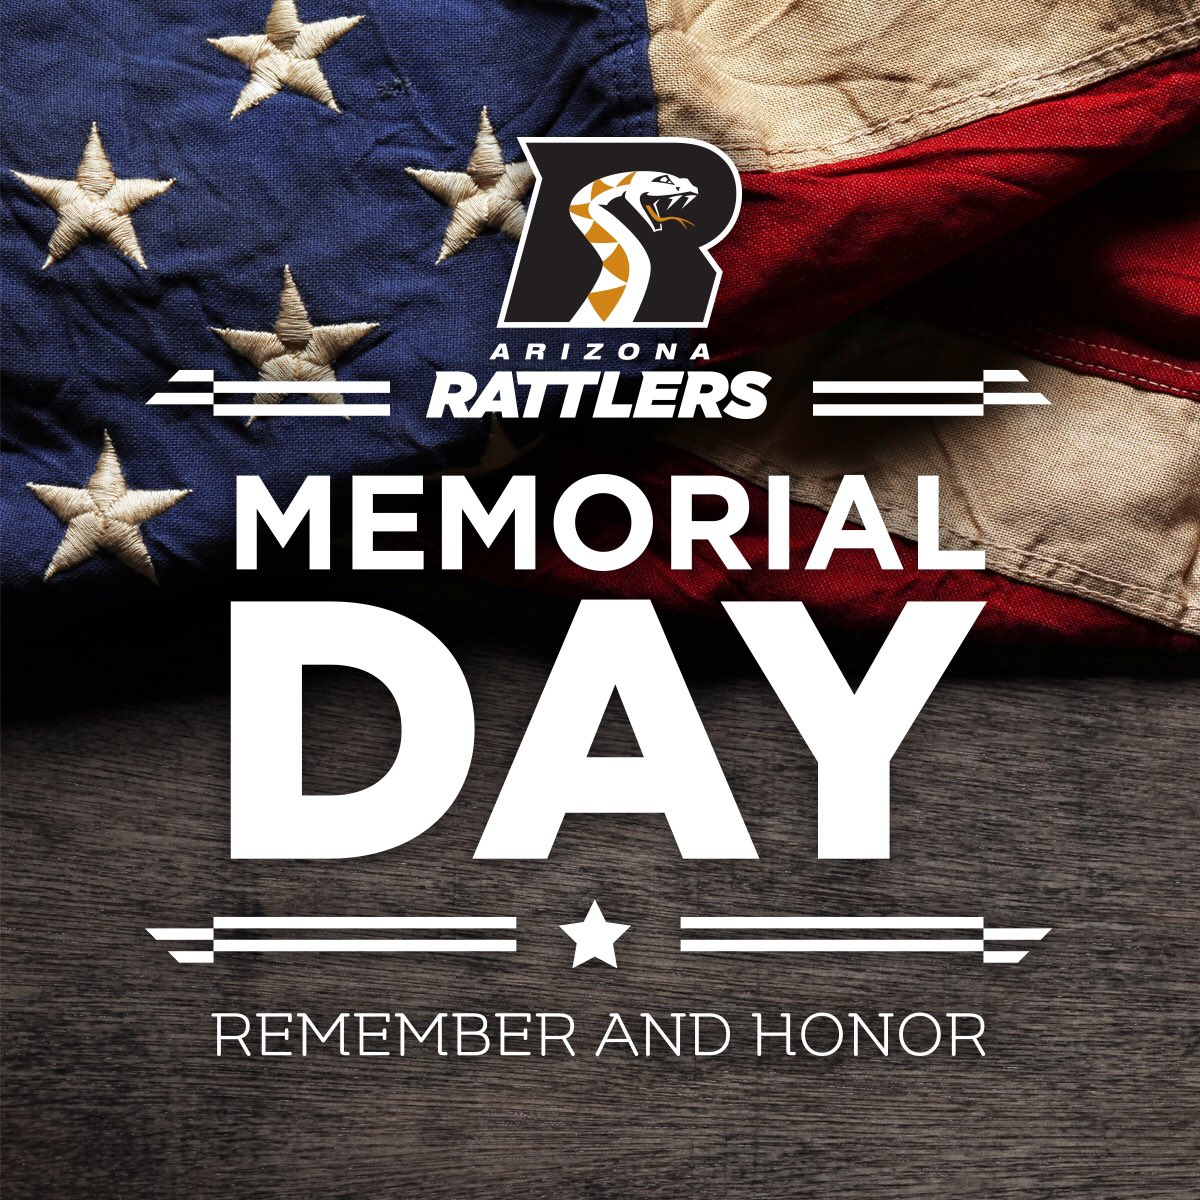 Remembering those today who gave the ultimate sacrifice for our freedoms! #MemorialDay https://t.co/hkEGzPHTtl